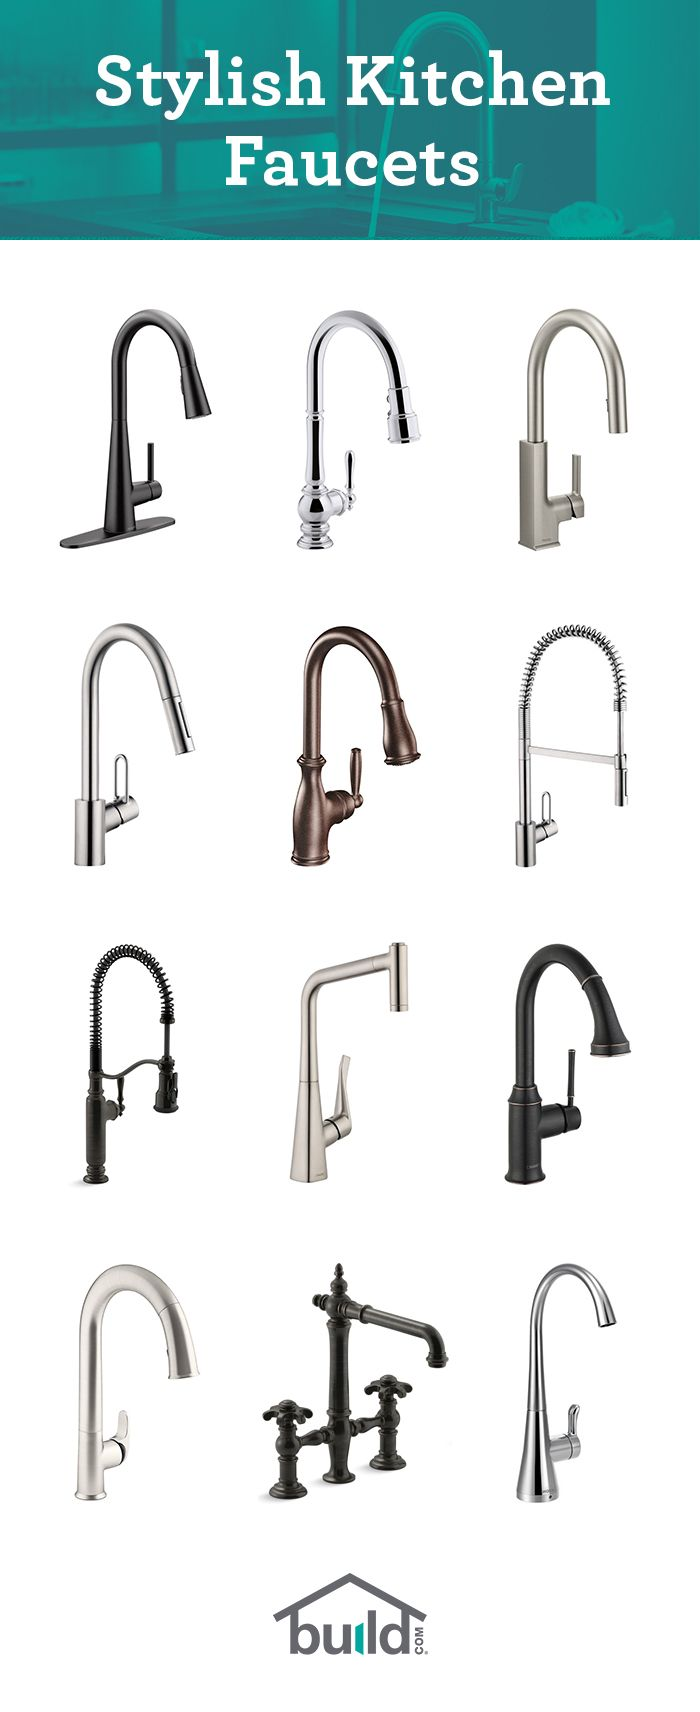 tagfornavfinal bathroom hand and coupon showers facuets rgb faucet kitchen direct deltalogo logo delta black